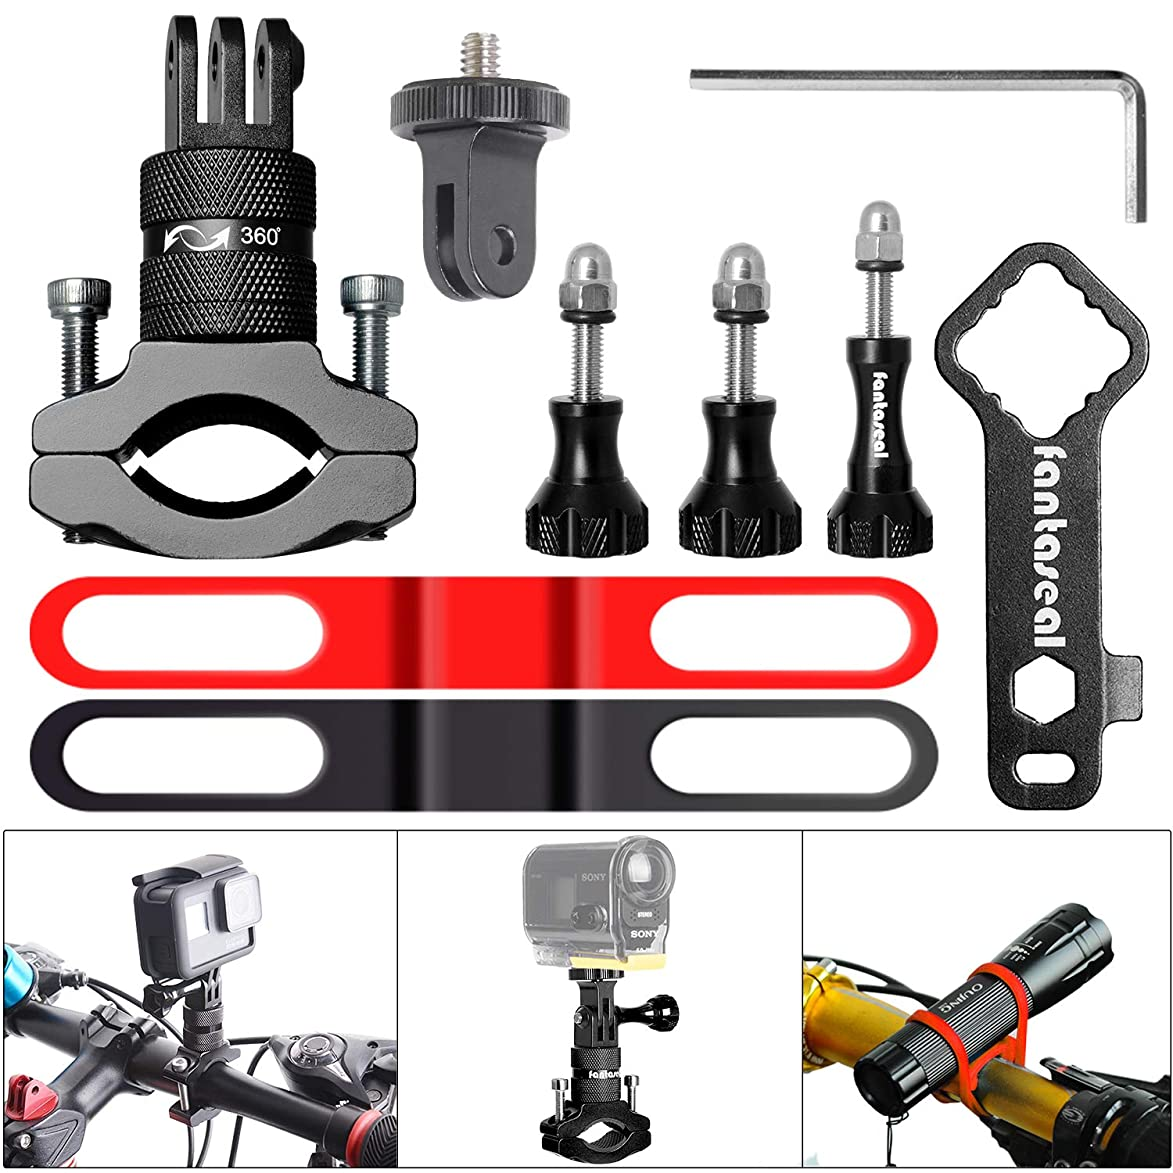 8in1 Aluminum Alloy 360° Roatary Action Camera Bike Handlebar Clamp Mount Kit Motion Sports Camcorder BMX Motorcycle Bicycle Seatpost Pole Holder Compatible GoPro Sony DJI OSMO Action DBPOWER Akaso